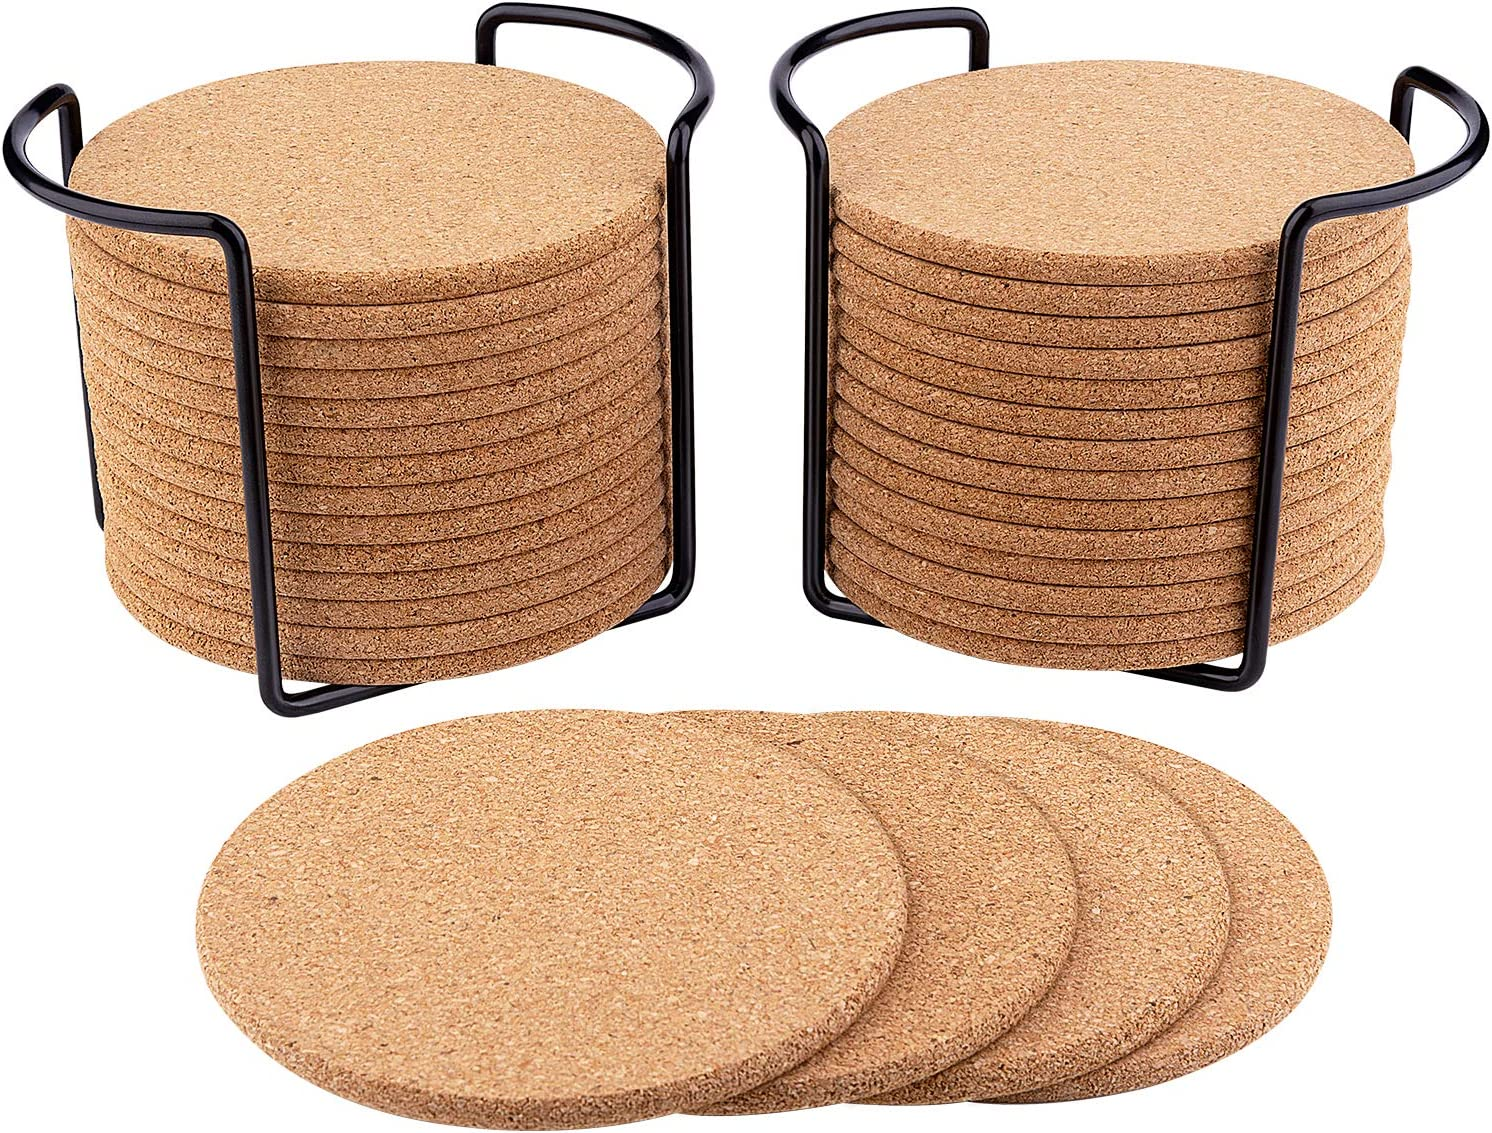 32 Pcs Cork Coasters for Drinks 3.9 Diameter with Metal Holder, Natural Cork Absorbent Coaster Set Round Edge